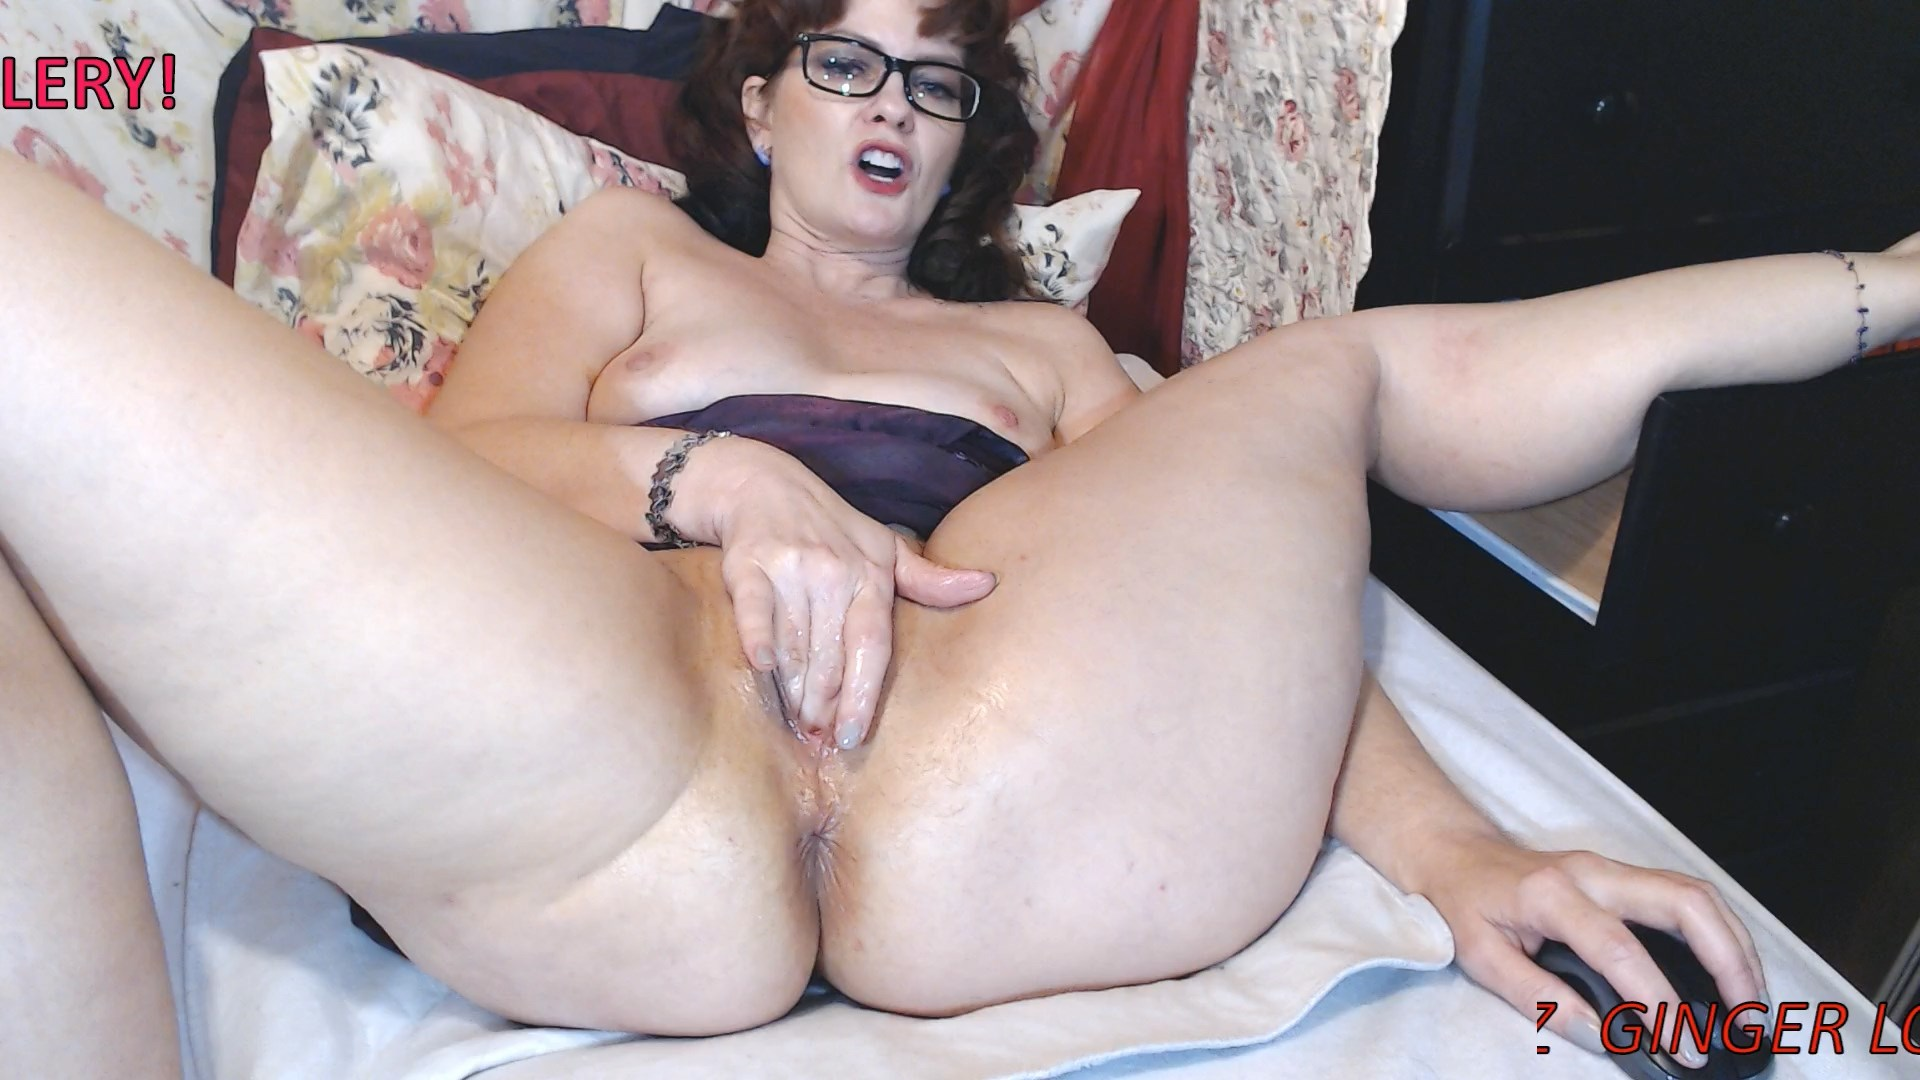 Cinnamonngirll - Mom loves that 24 year old cock